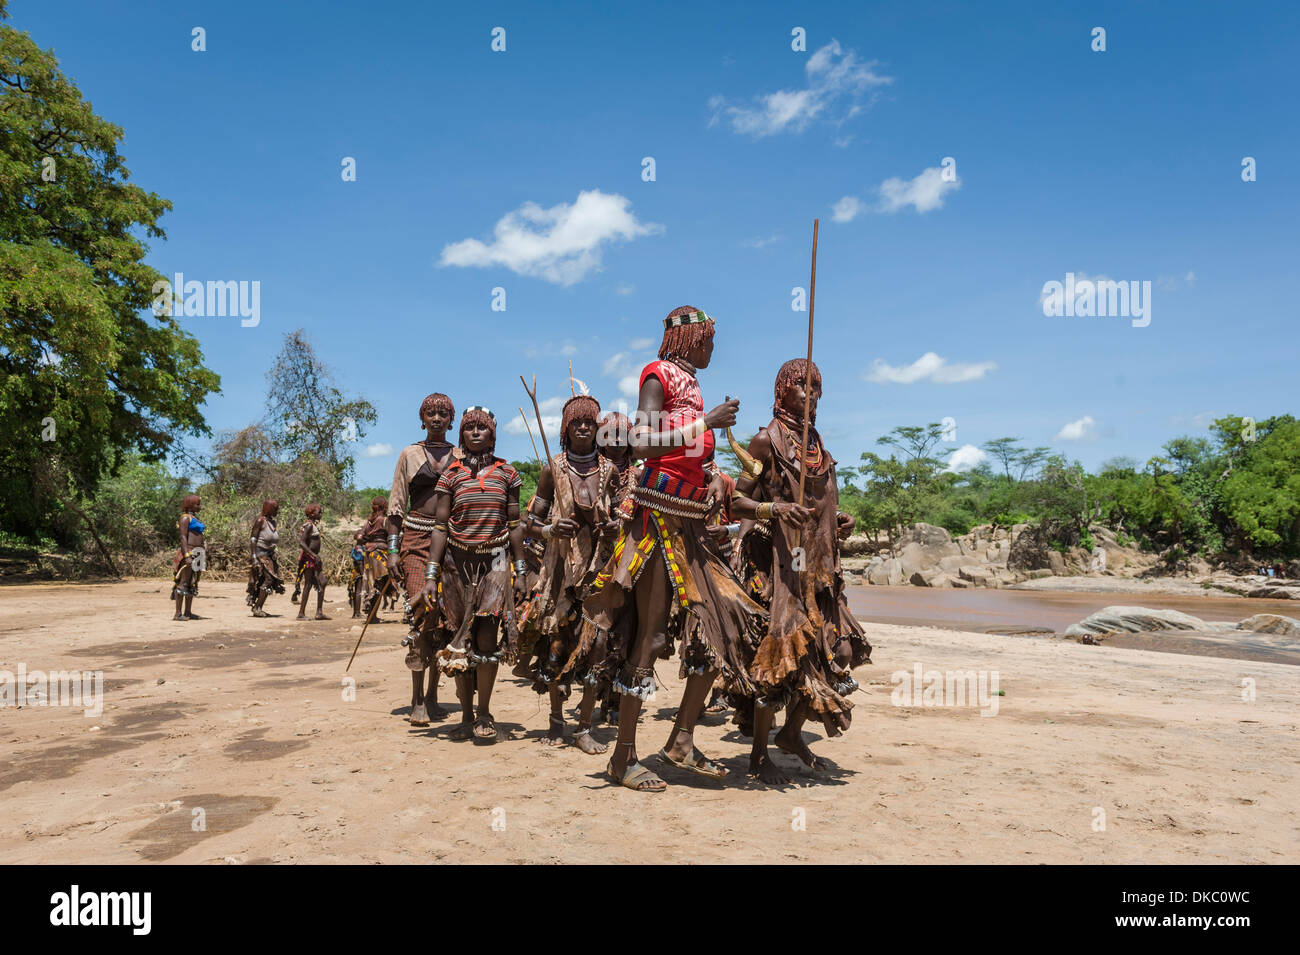 Women dancing during a bull jumping ceremony. A rite of passage from boys to men. Hamer tribe, Omo valley, Ethiopia - Stock Image